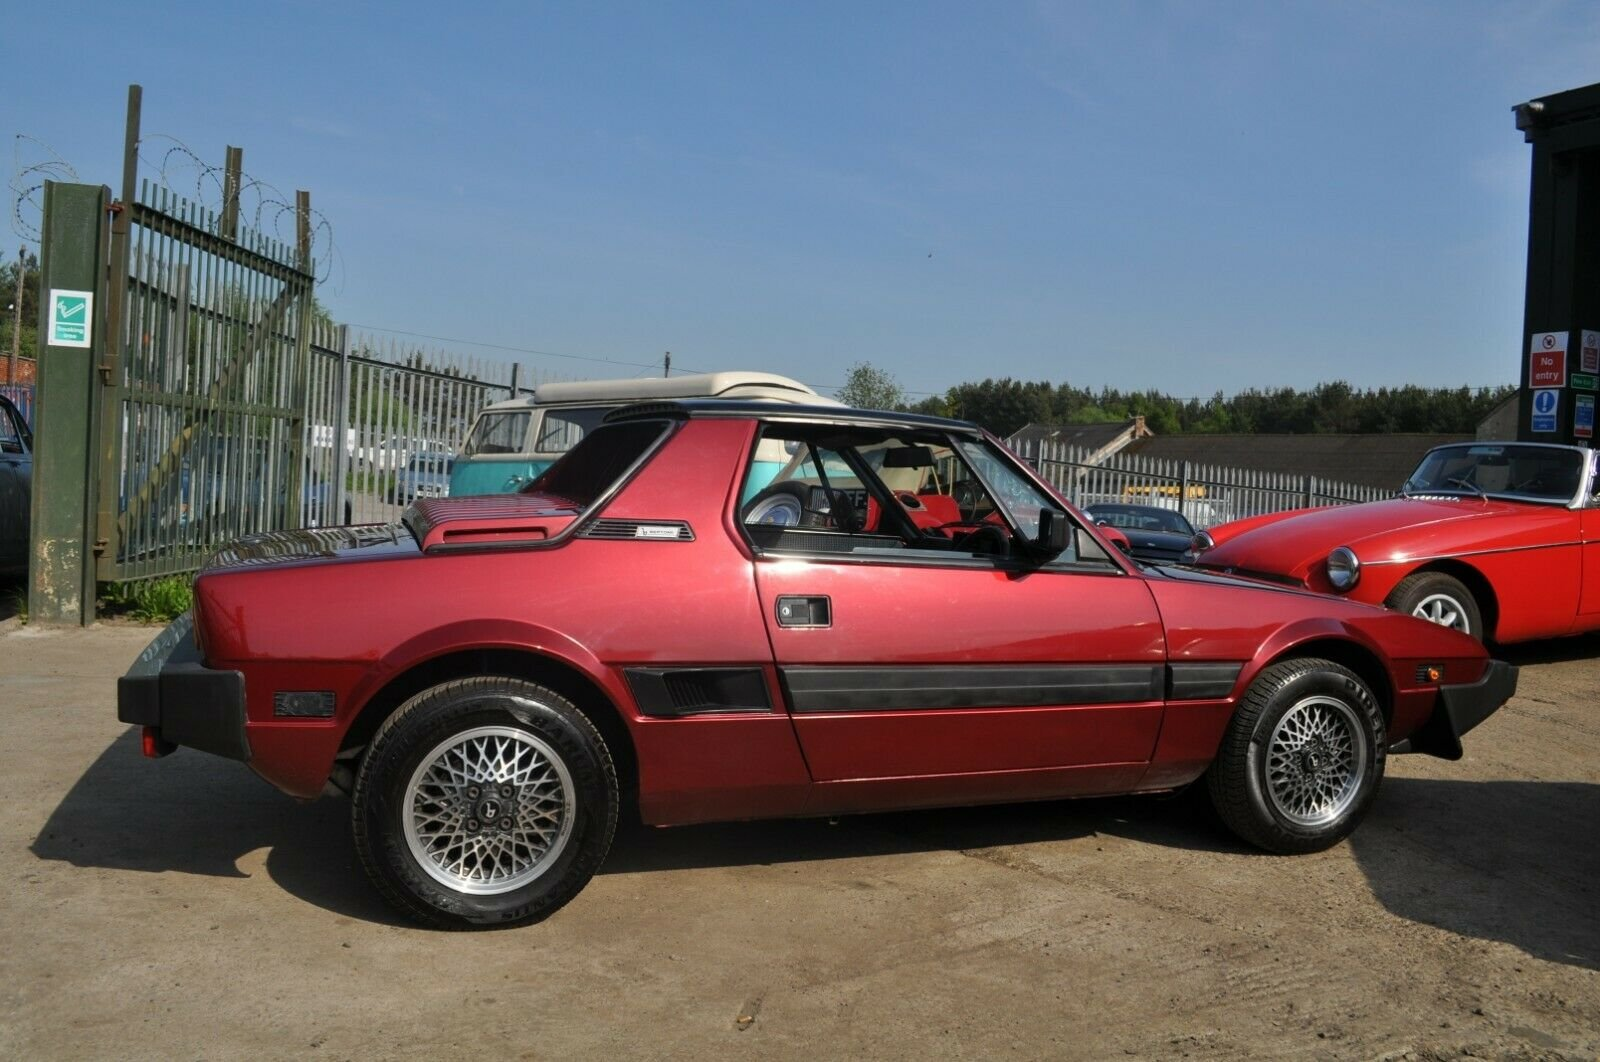 1989 FIAT X/19 GRAND FINALE LIMITED EDITION GOOD CONDITION For Sale (picture 3 of 6)